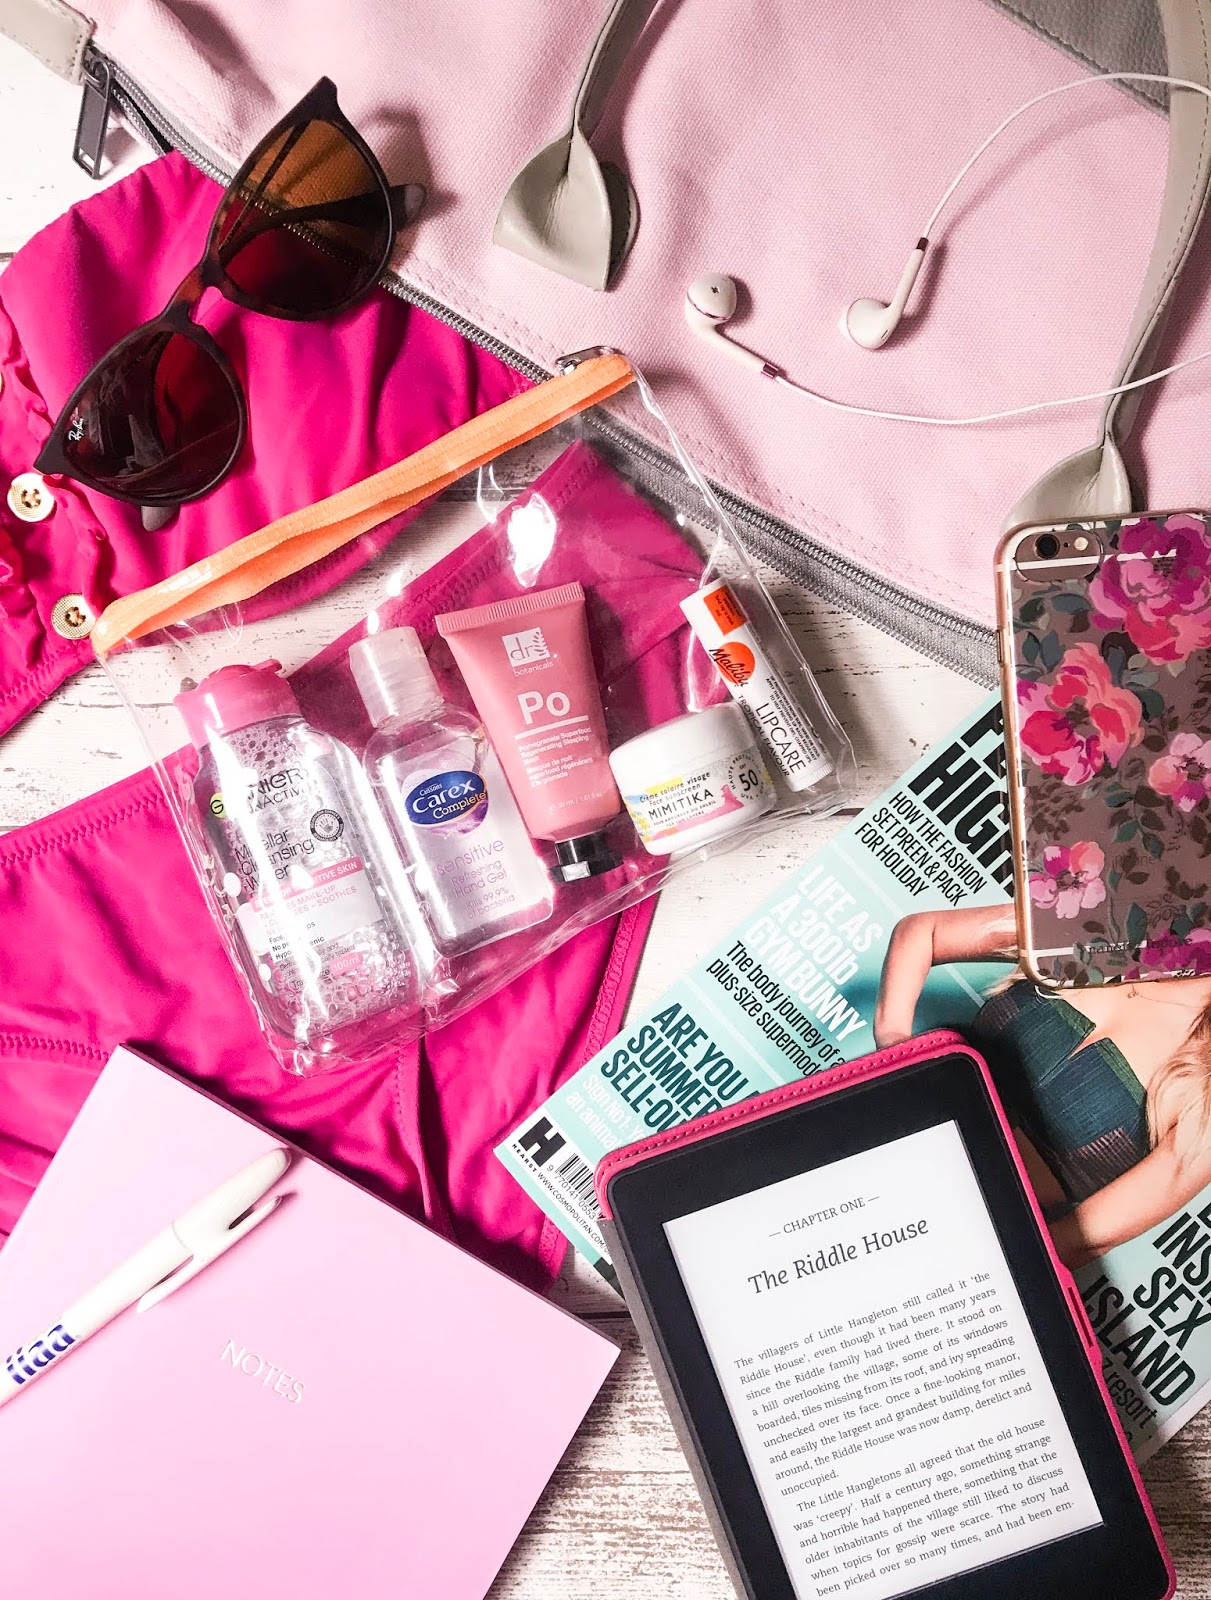 hand luggage items sunglasses, kindle, notebooks and beauty products